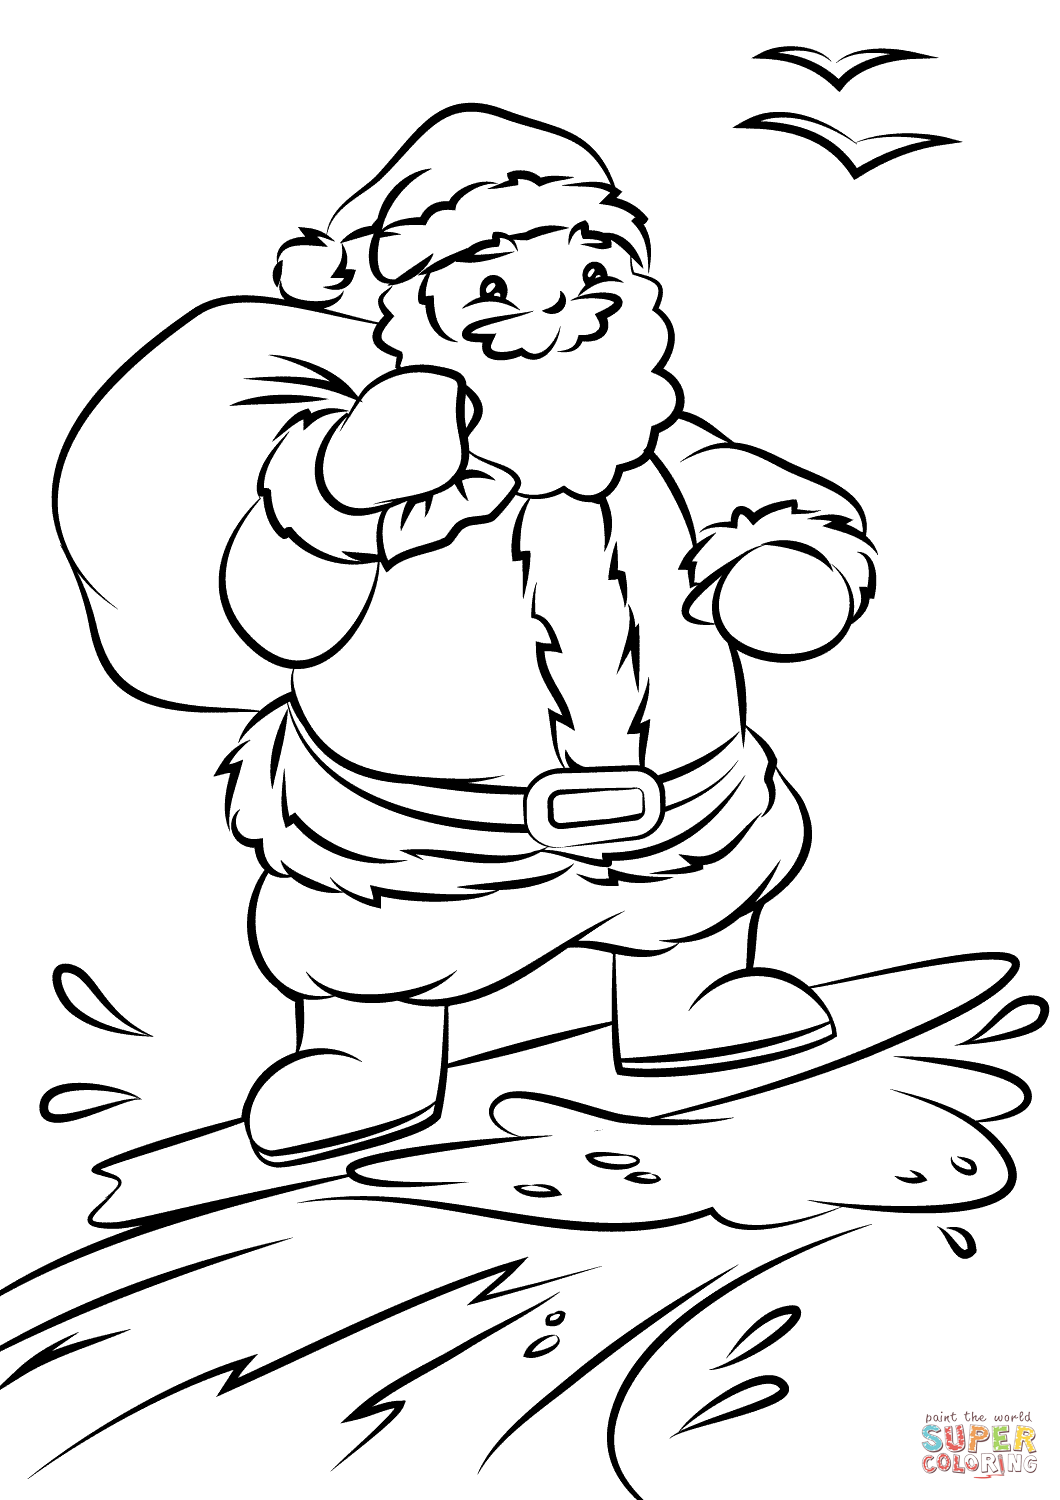 Santa For Coloring With Surfing Colouring Google Search Christmas STAMPS